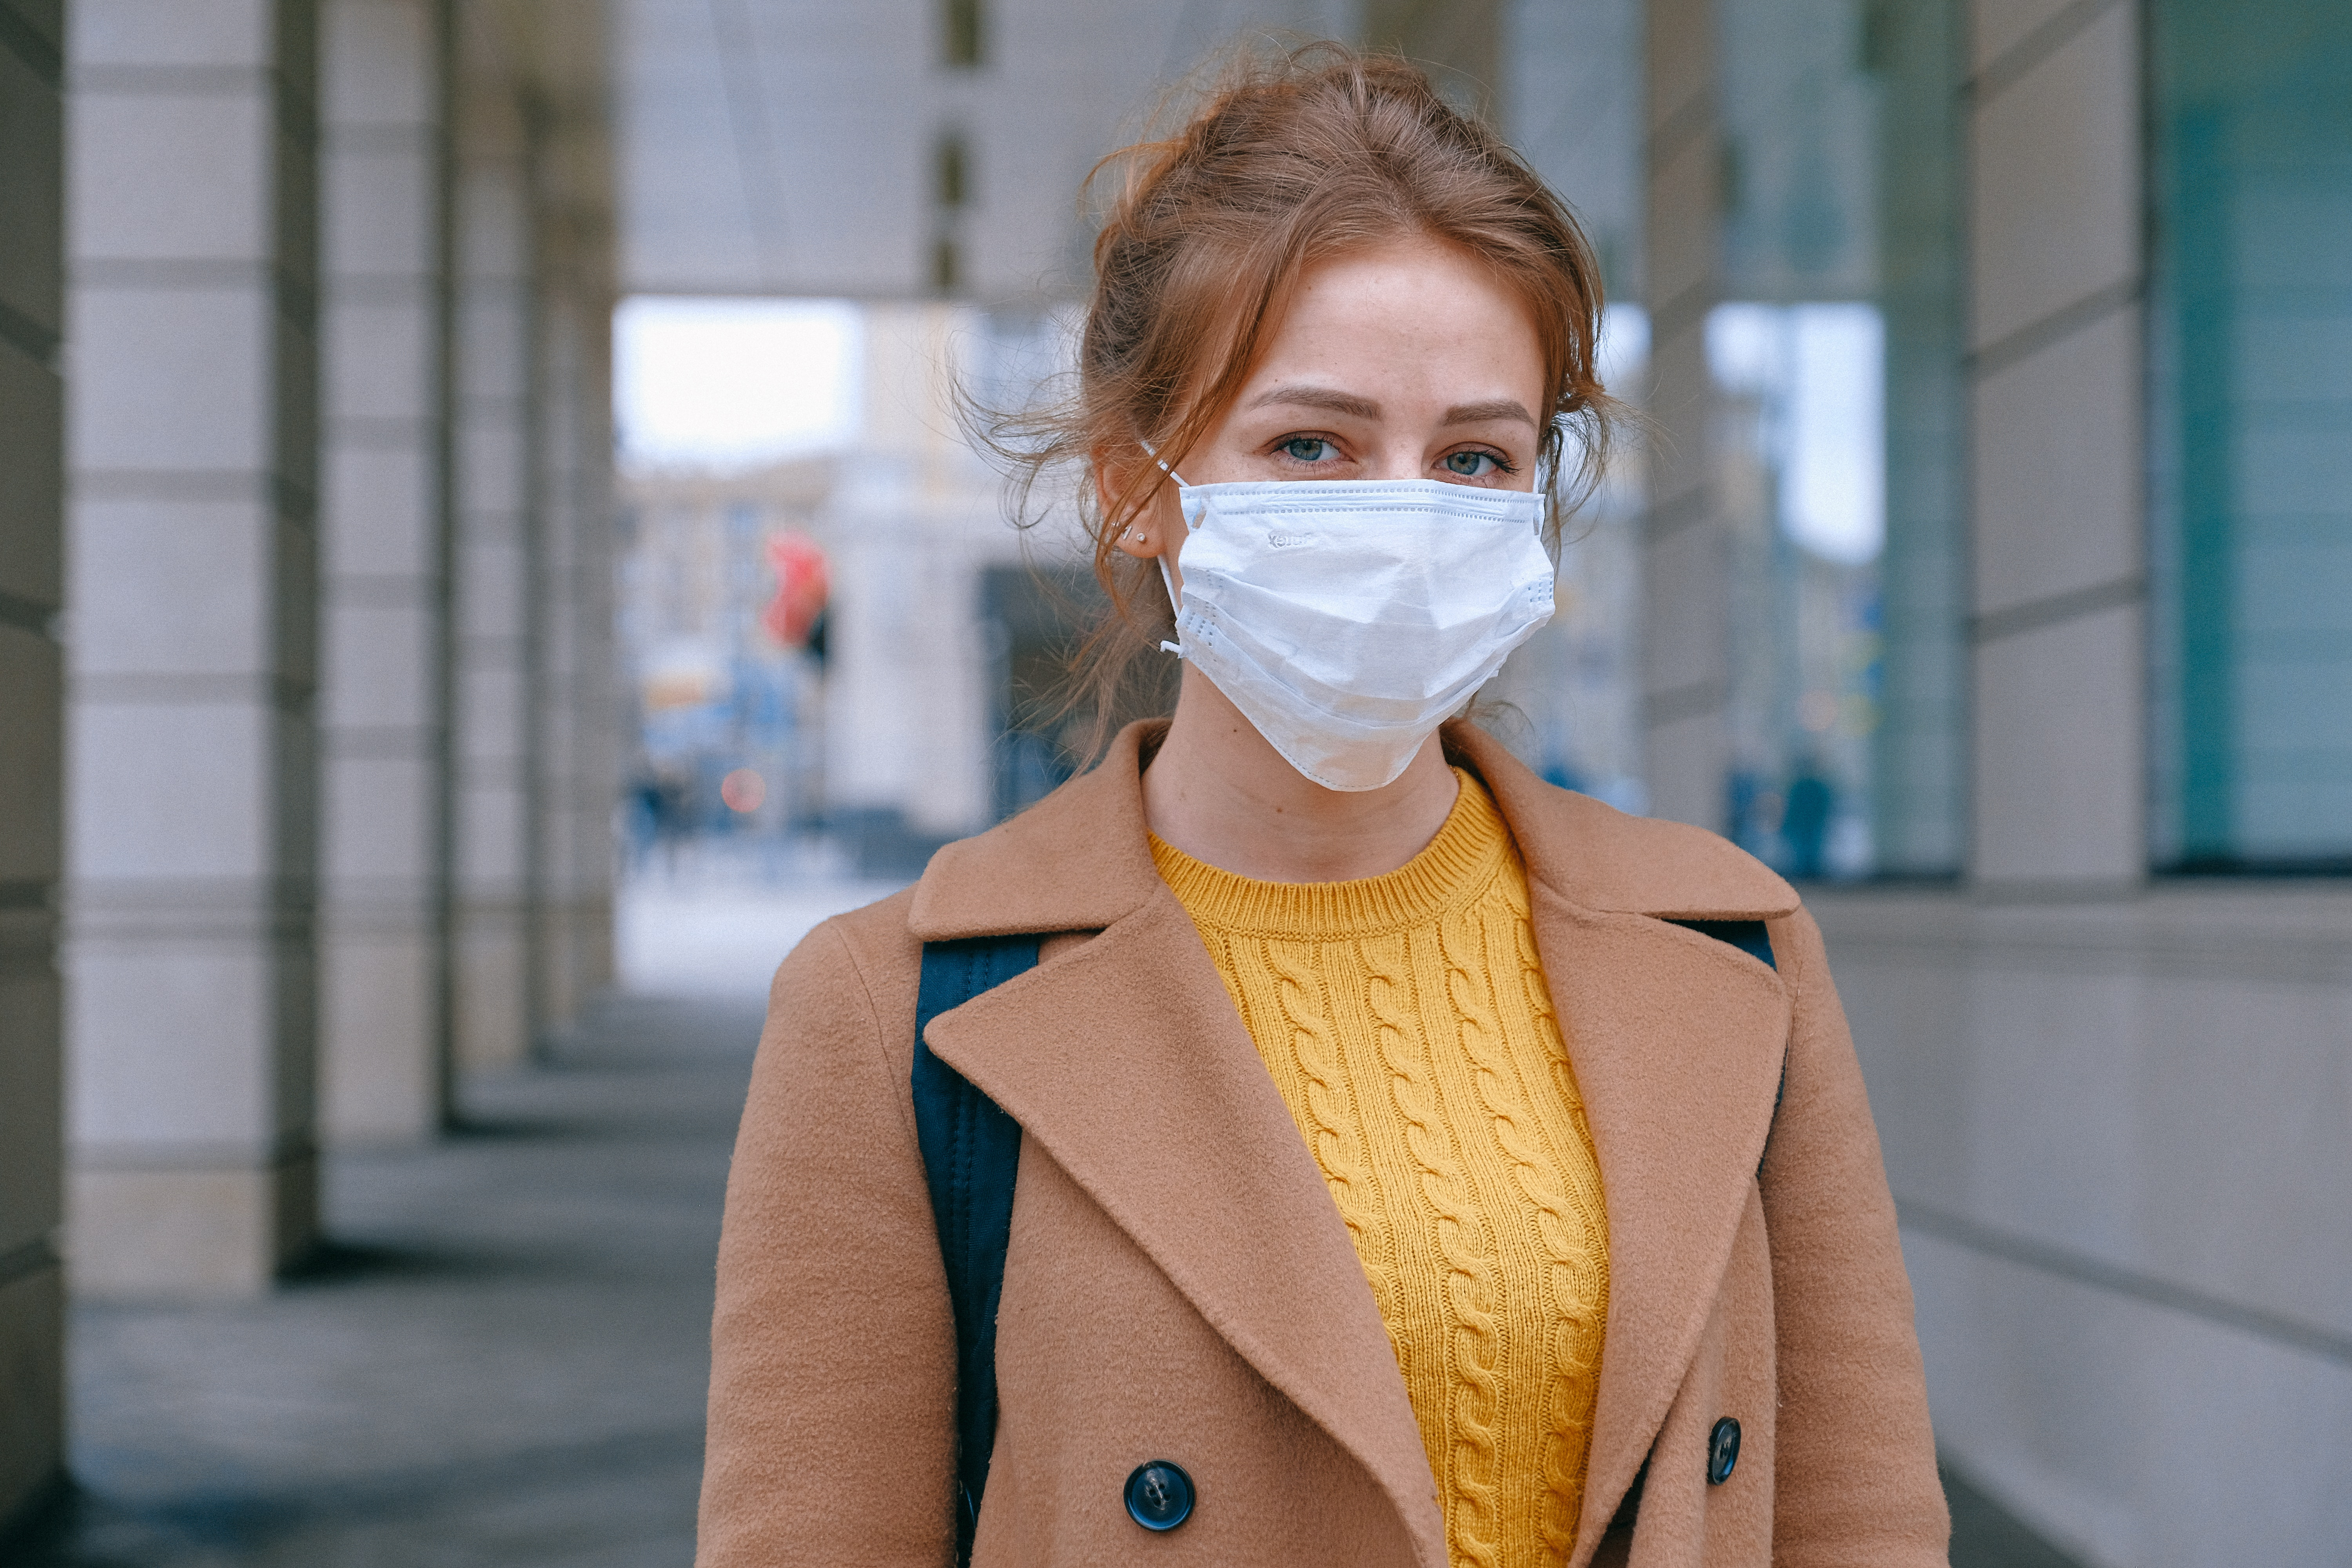 https://sociology.ubc.ca/wp-content/uploads/sites/3/2020/05/woman-wearing-face-mask-3902881.jpg